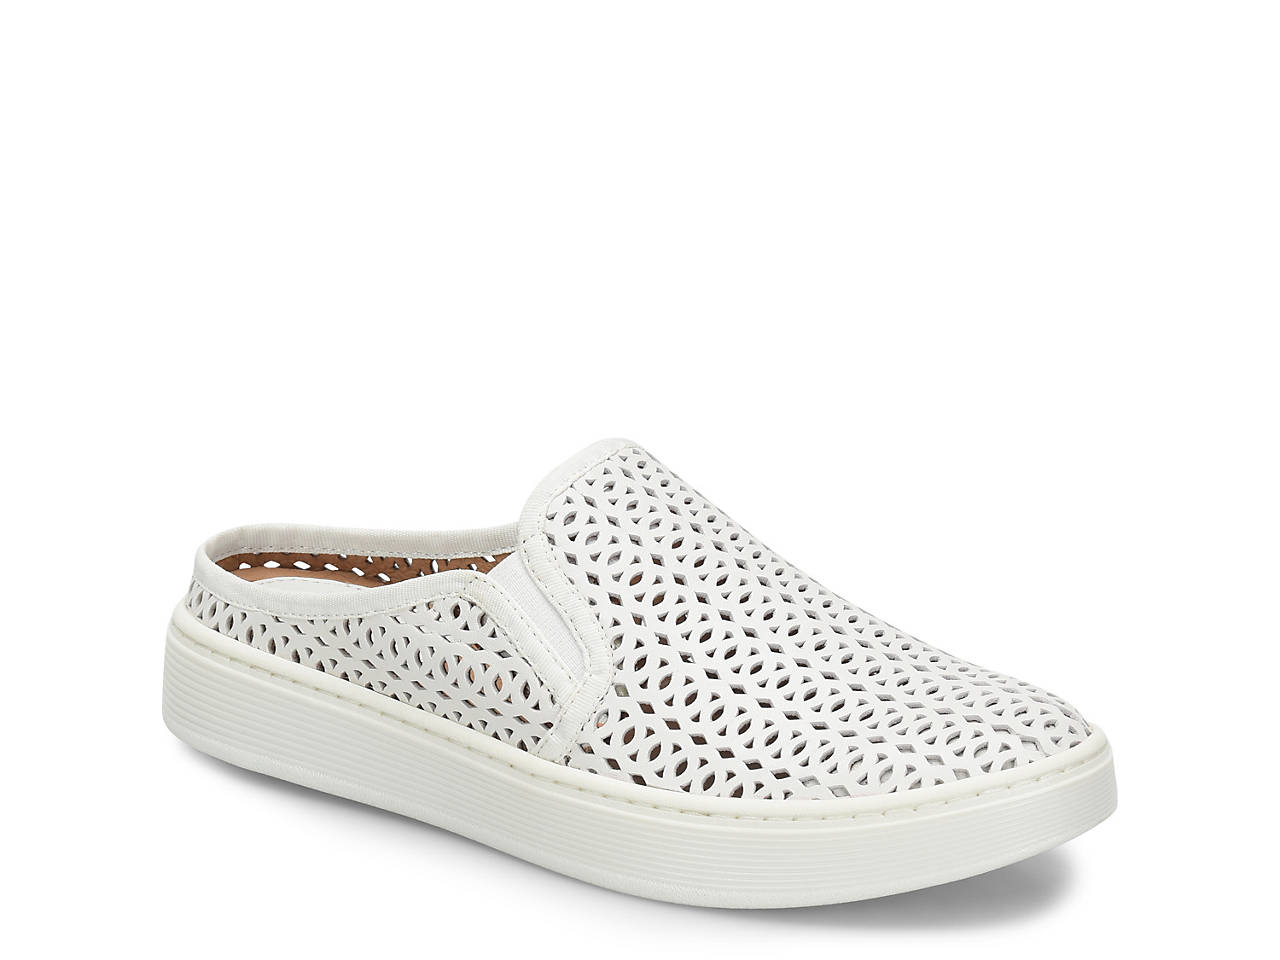 8db2385bc550 Sofft Somers II Slip-On Sneaker Women s Shoes